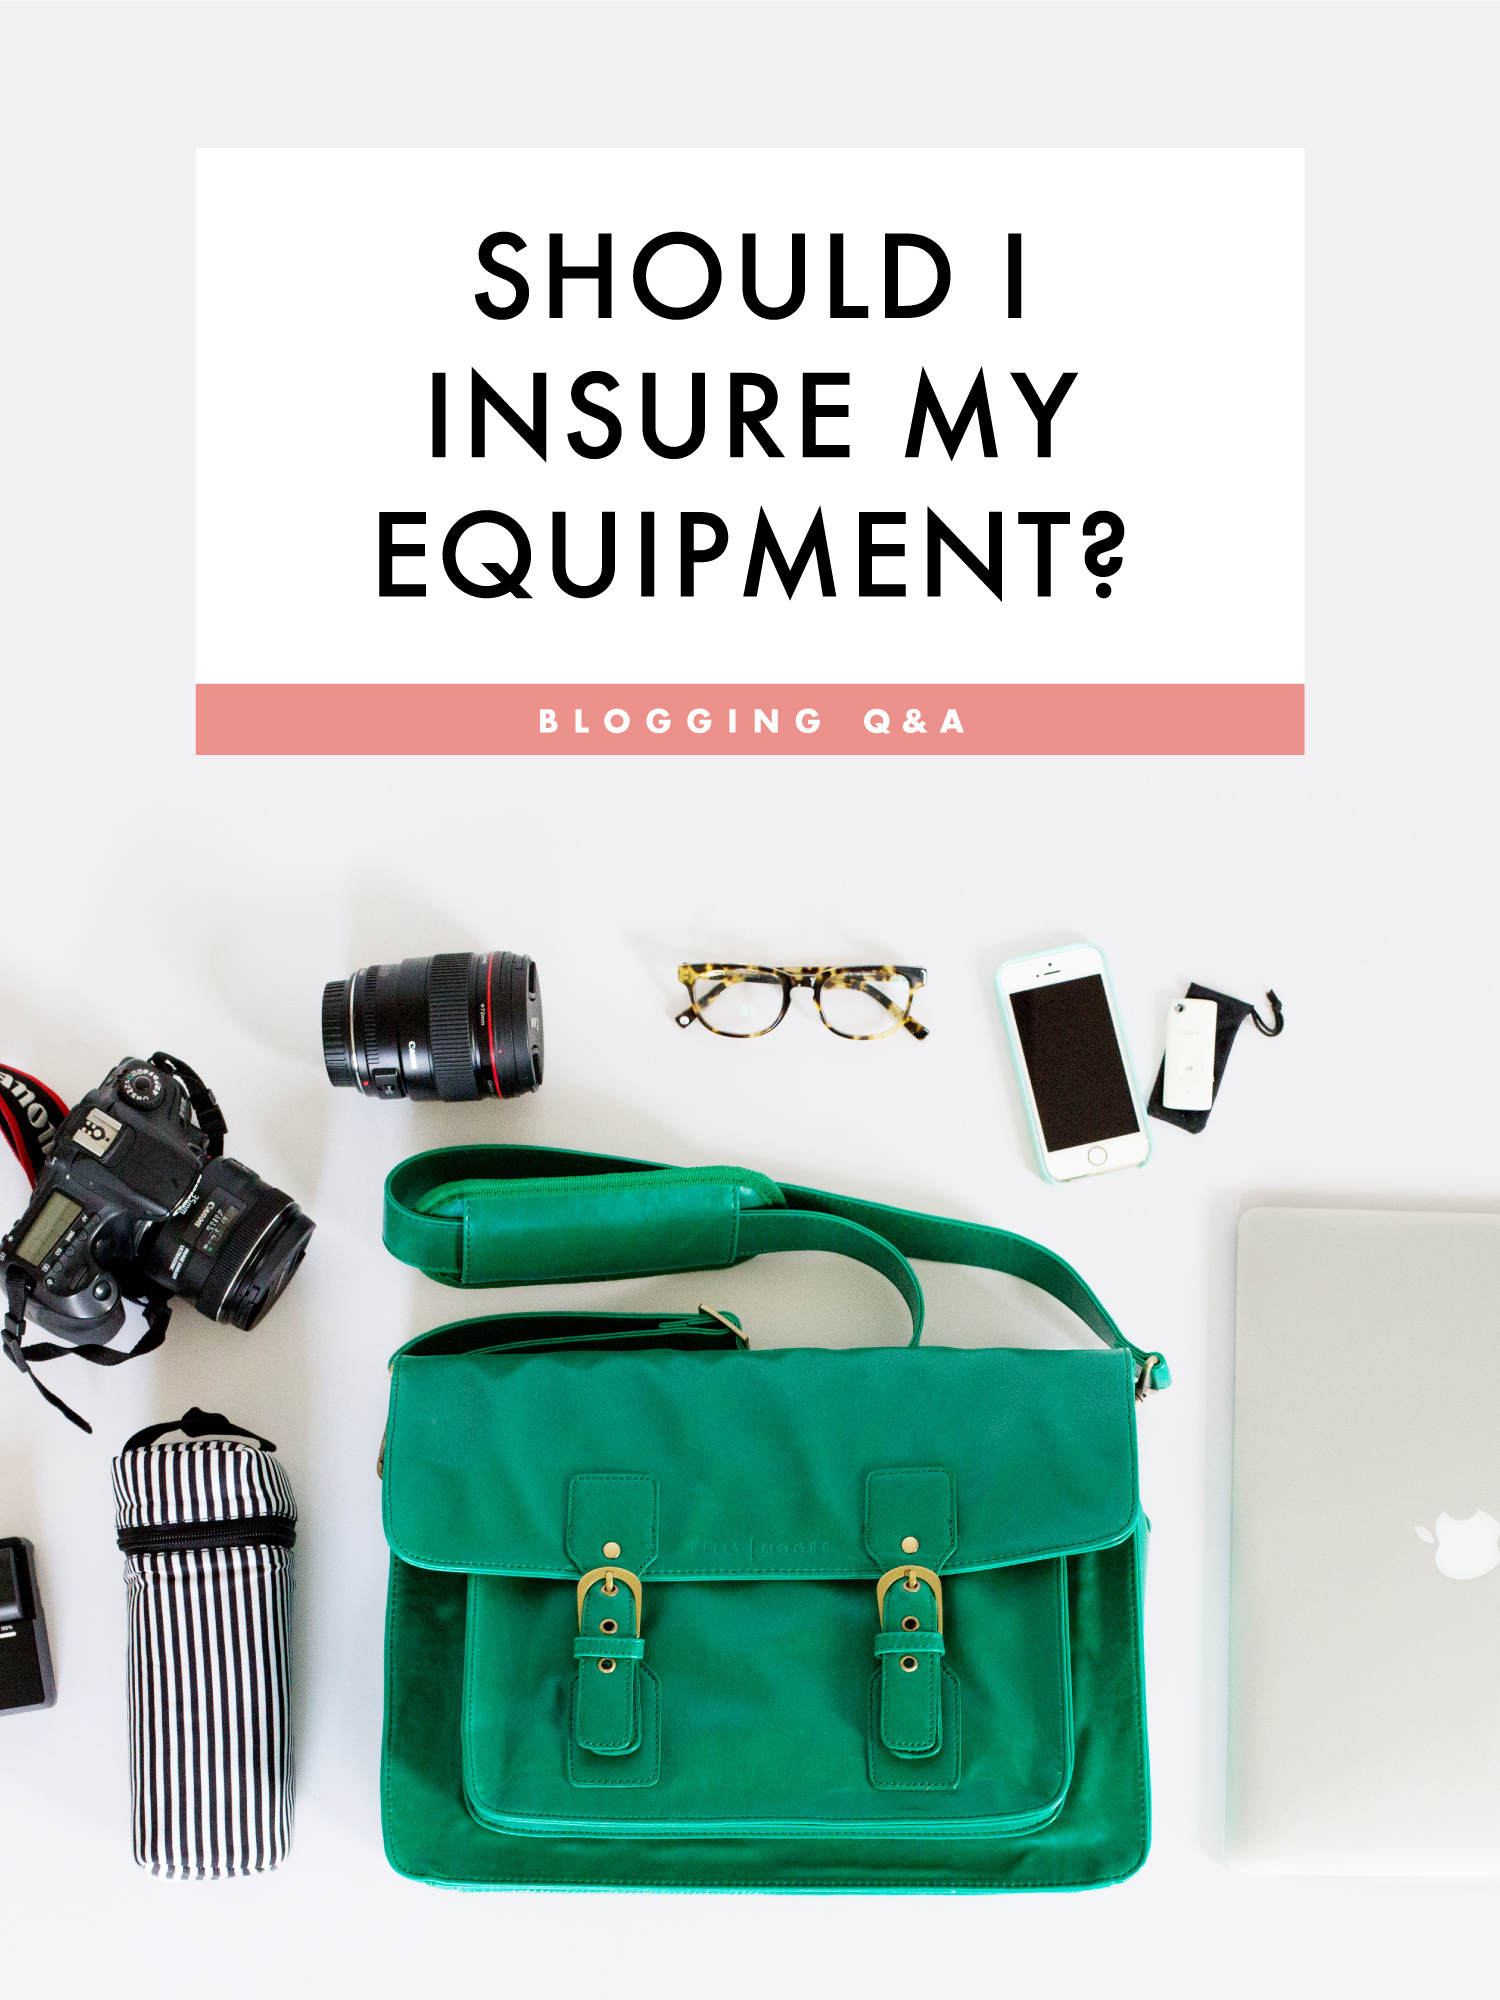 Should I insure my equipment